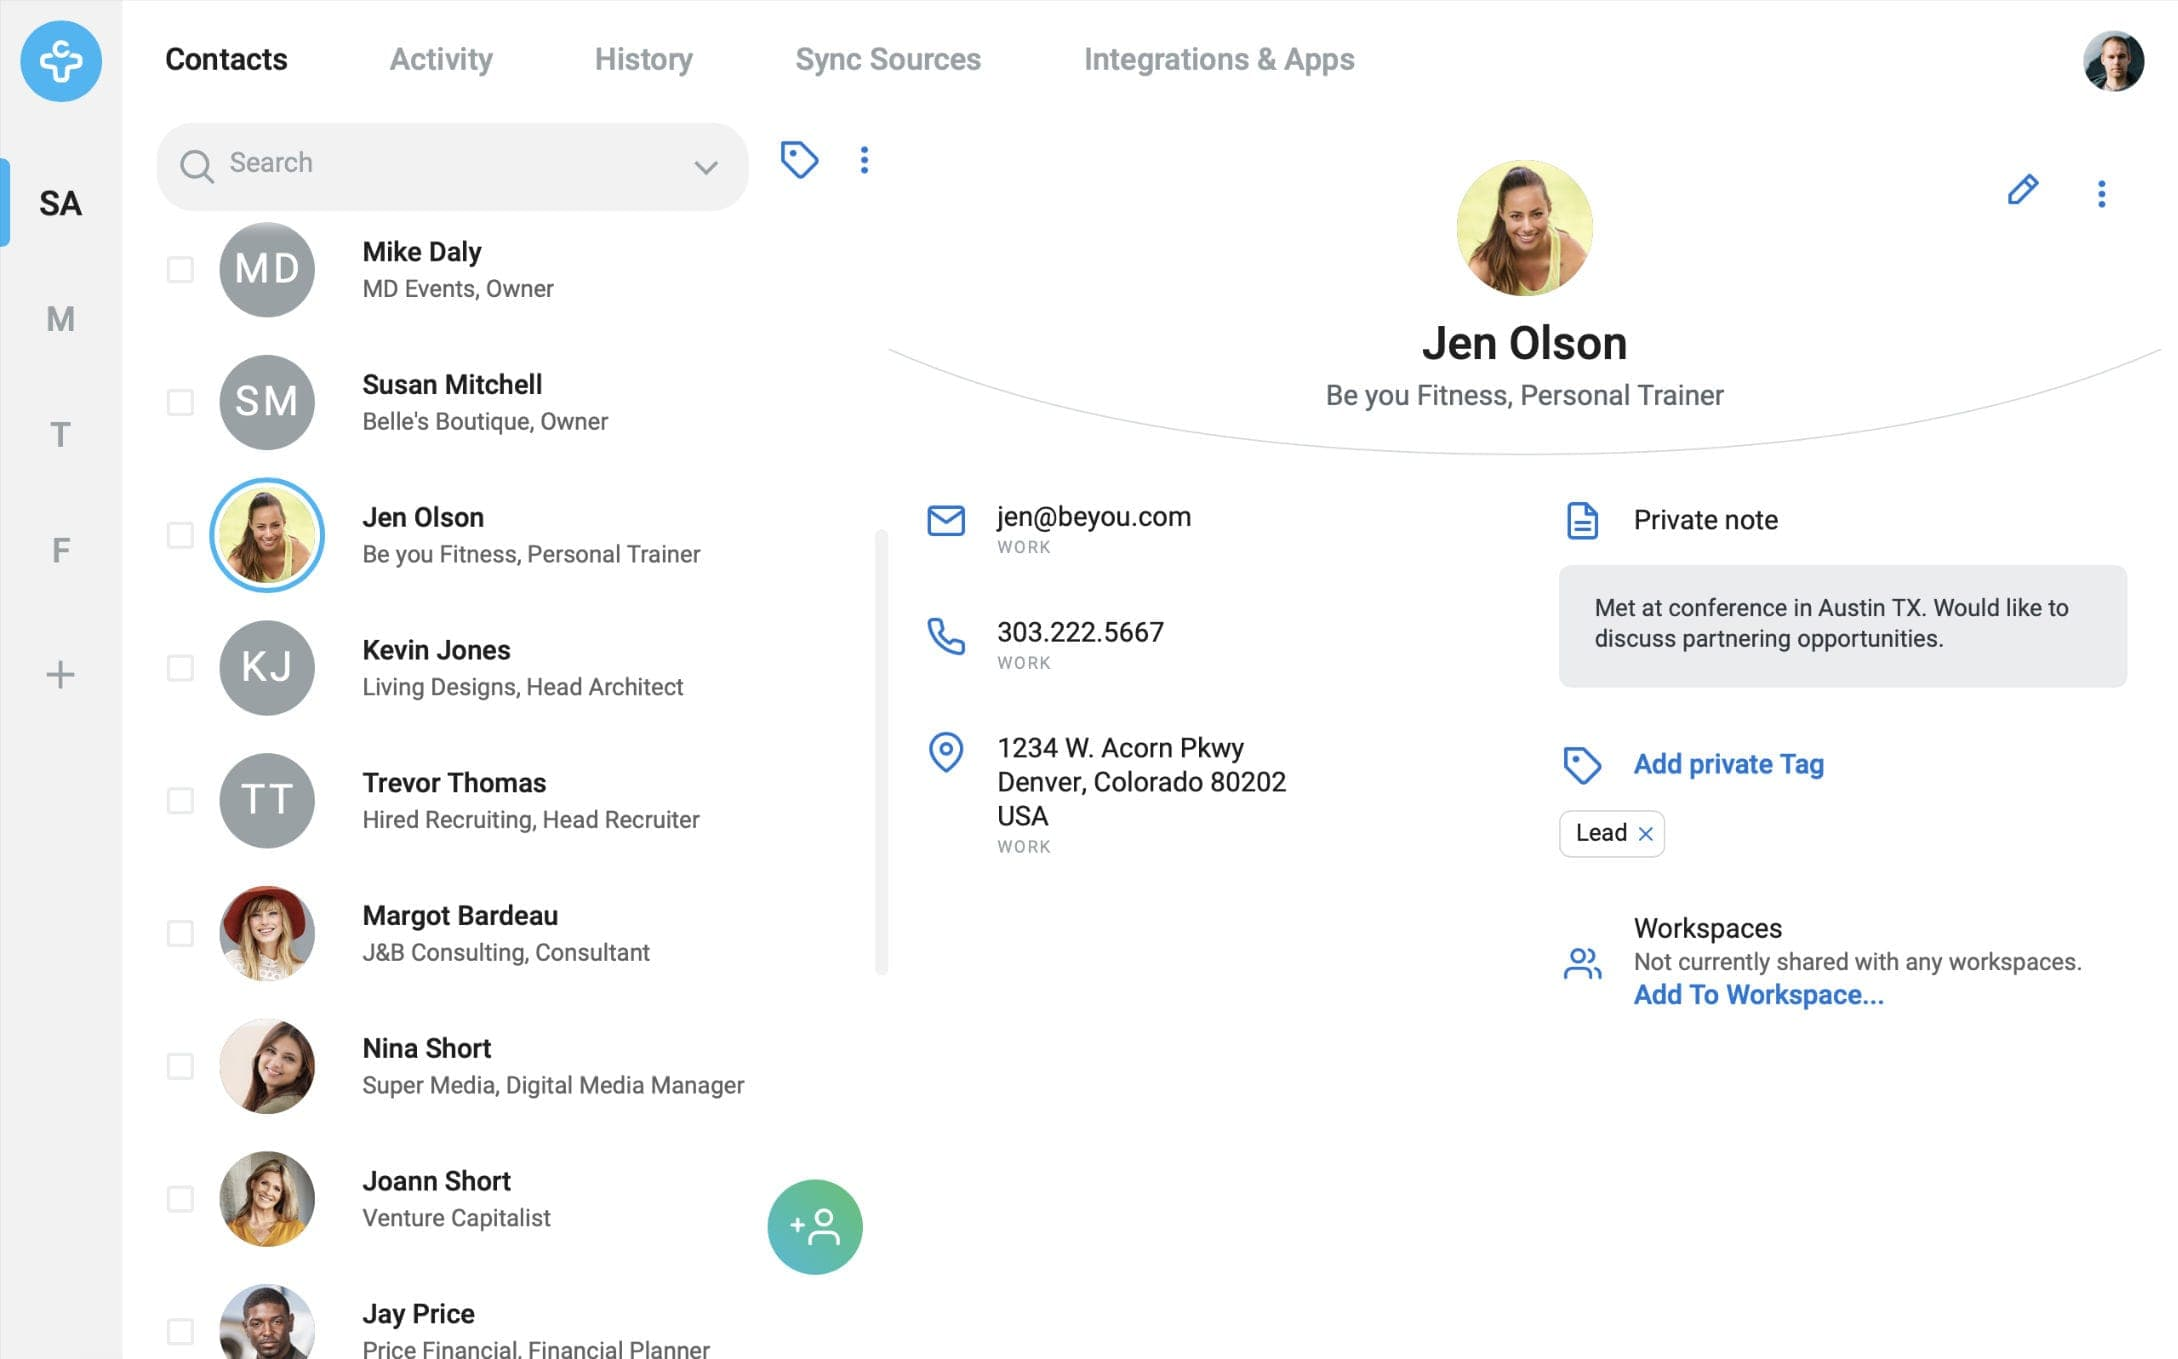 Contact Manager App for Web, Mac, & Gmail | Contacts+